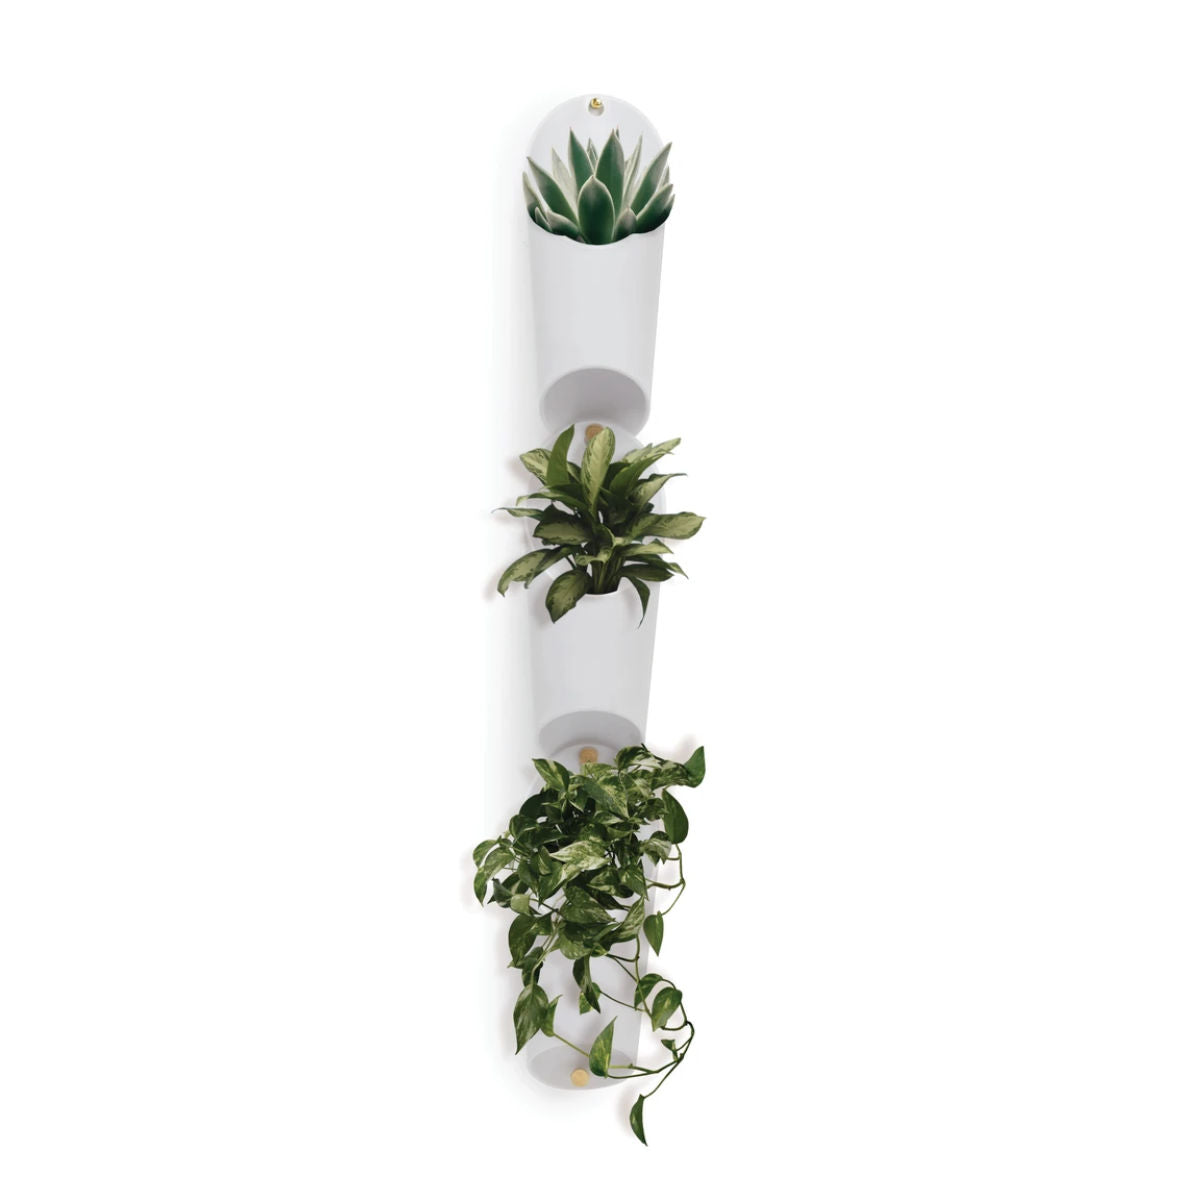 Umbra Floralink wall vessel, set of 3